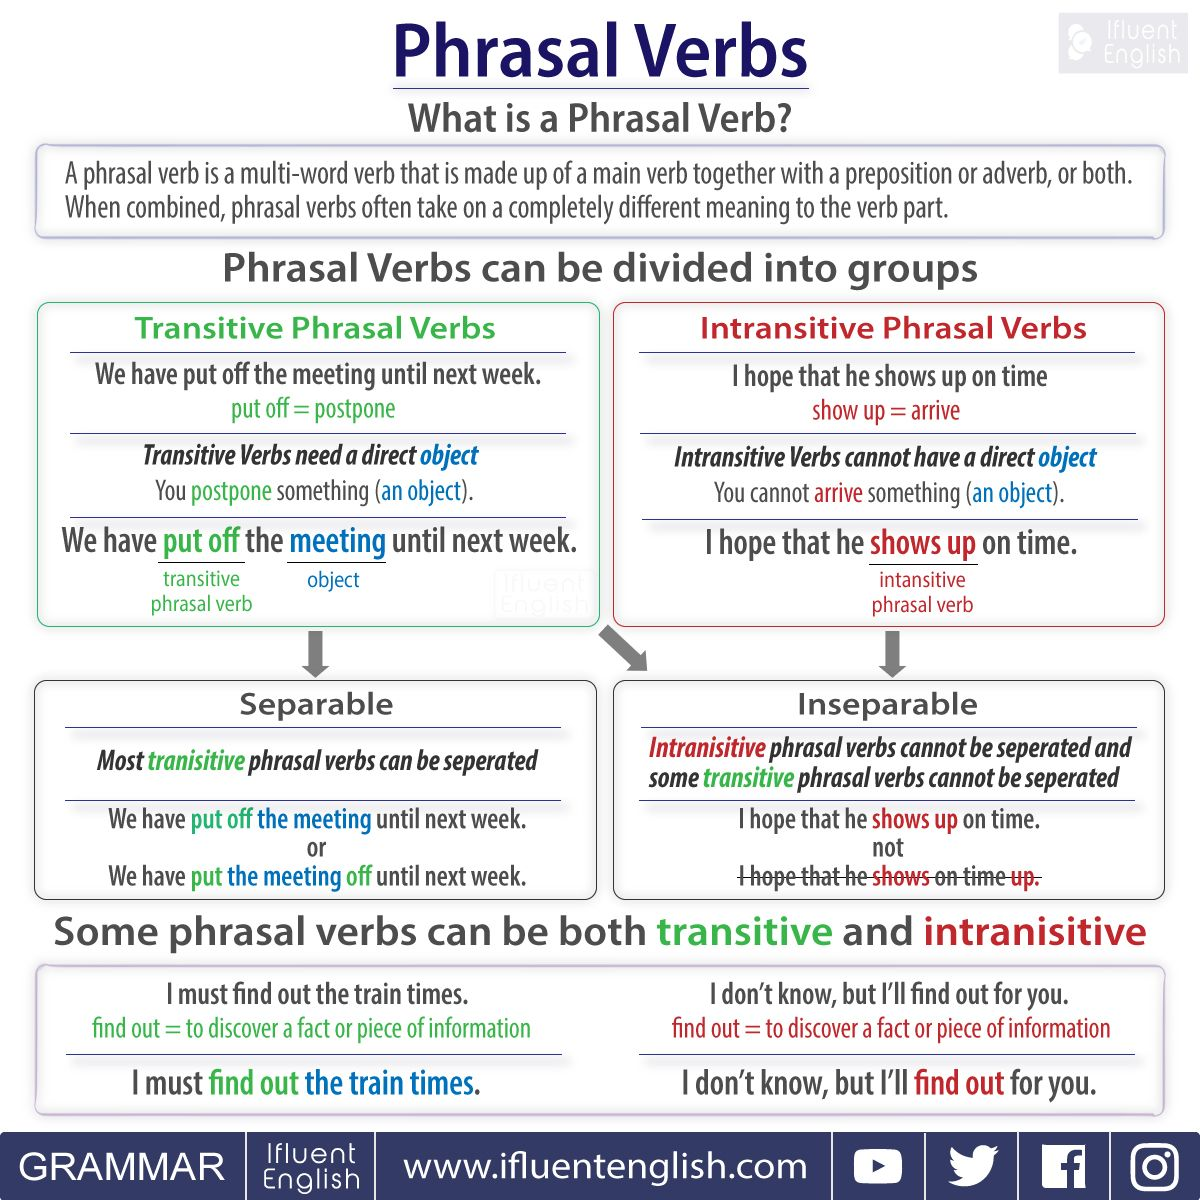 How To Use Phrasal Verbs Transitive And Intransitive